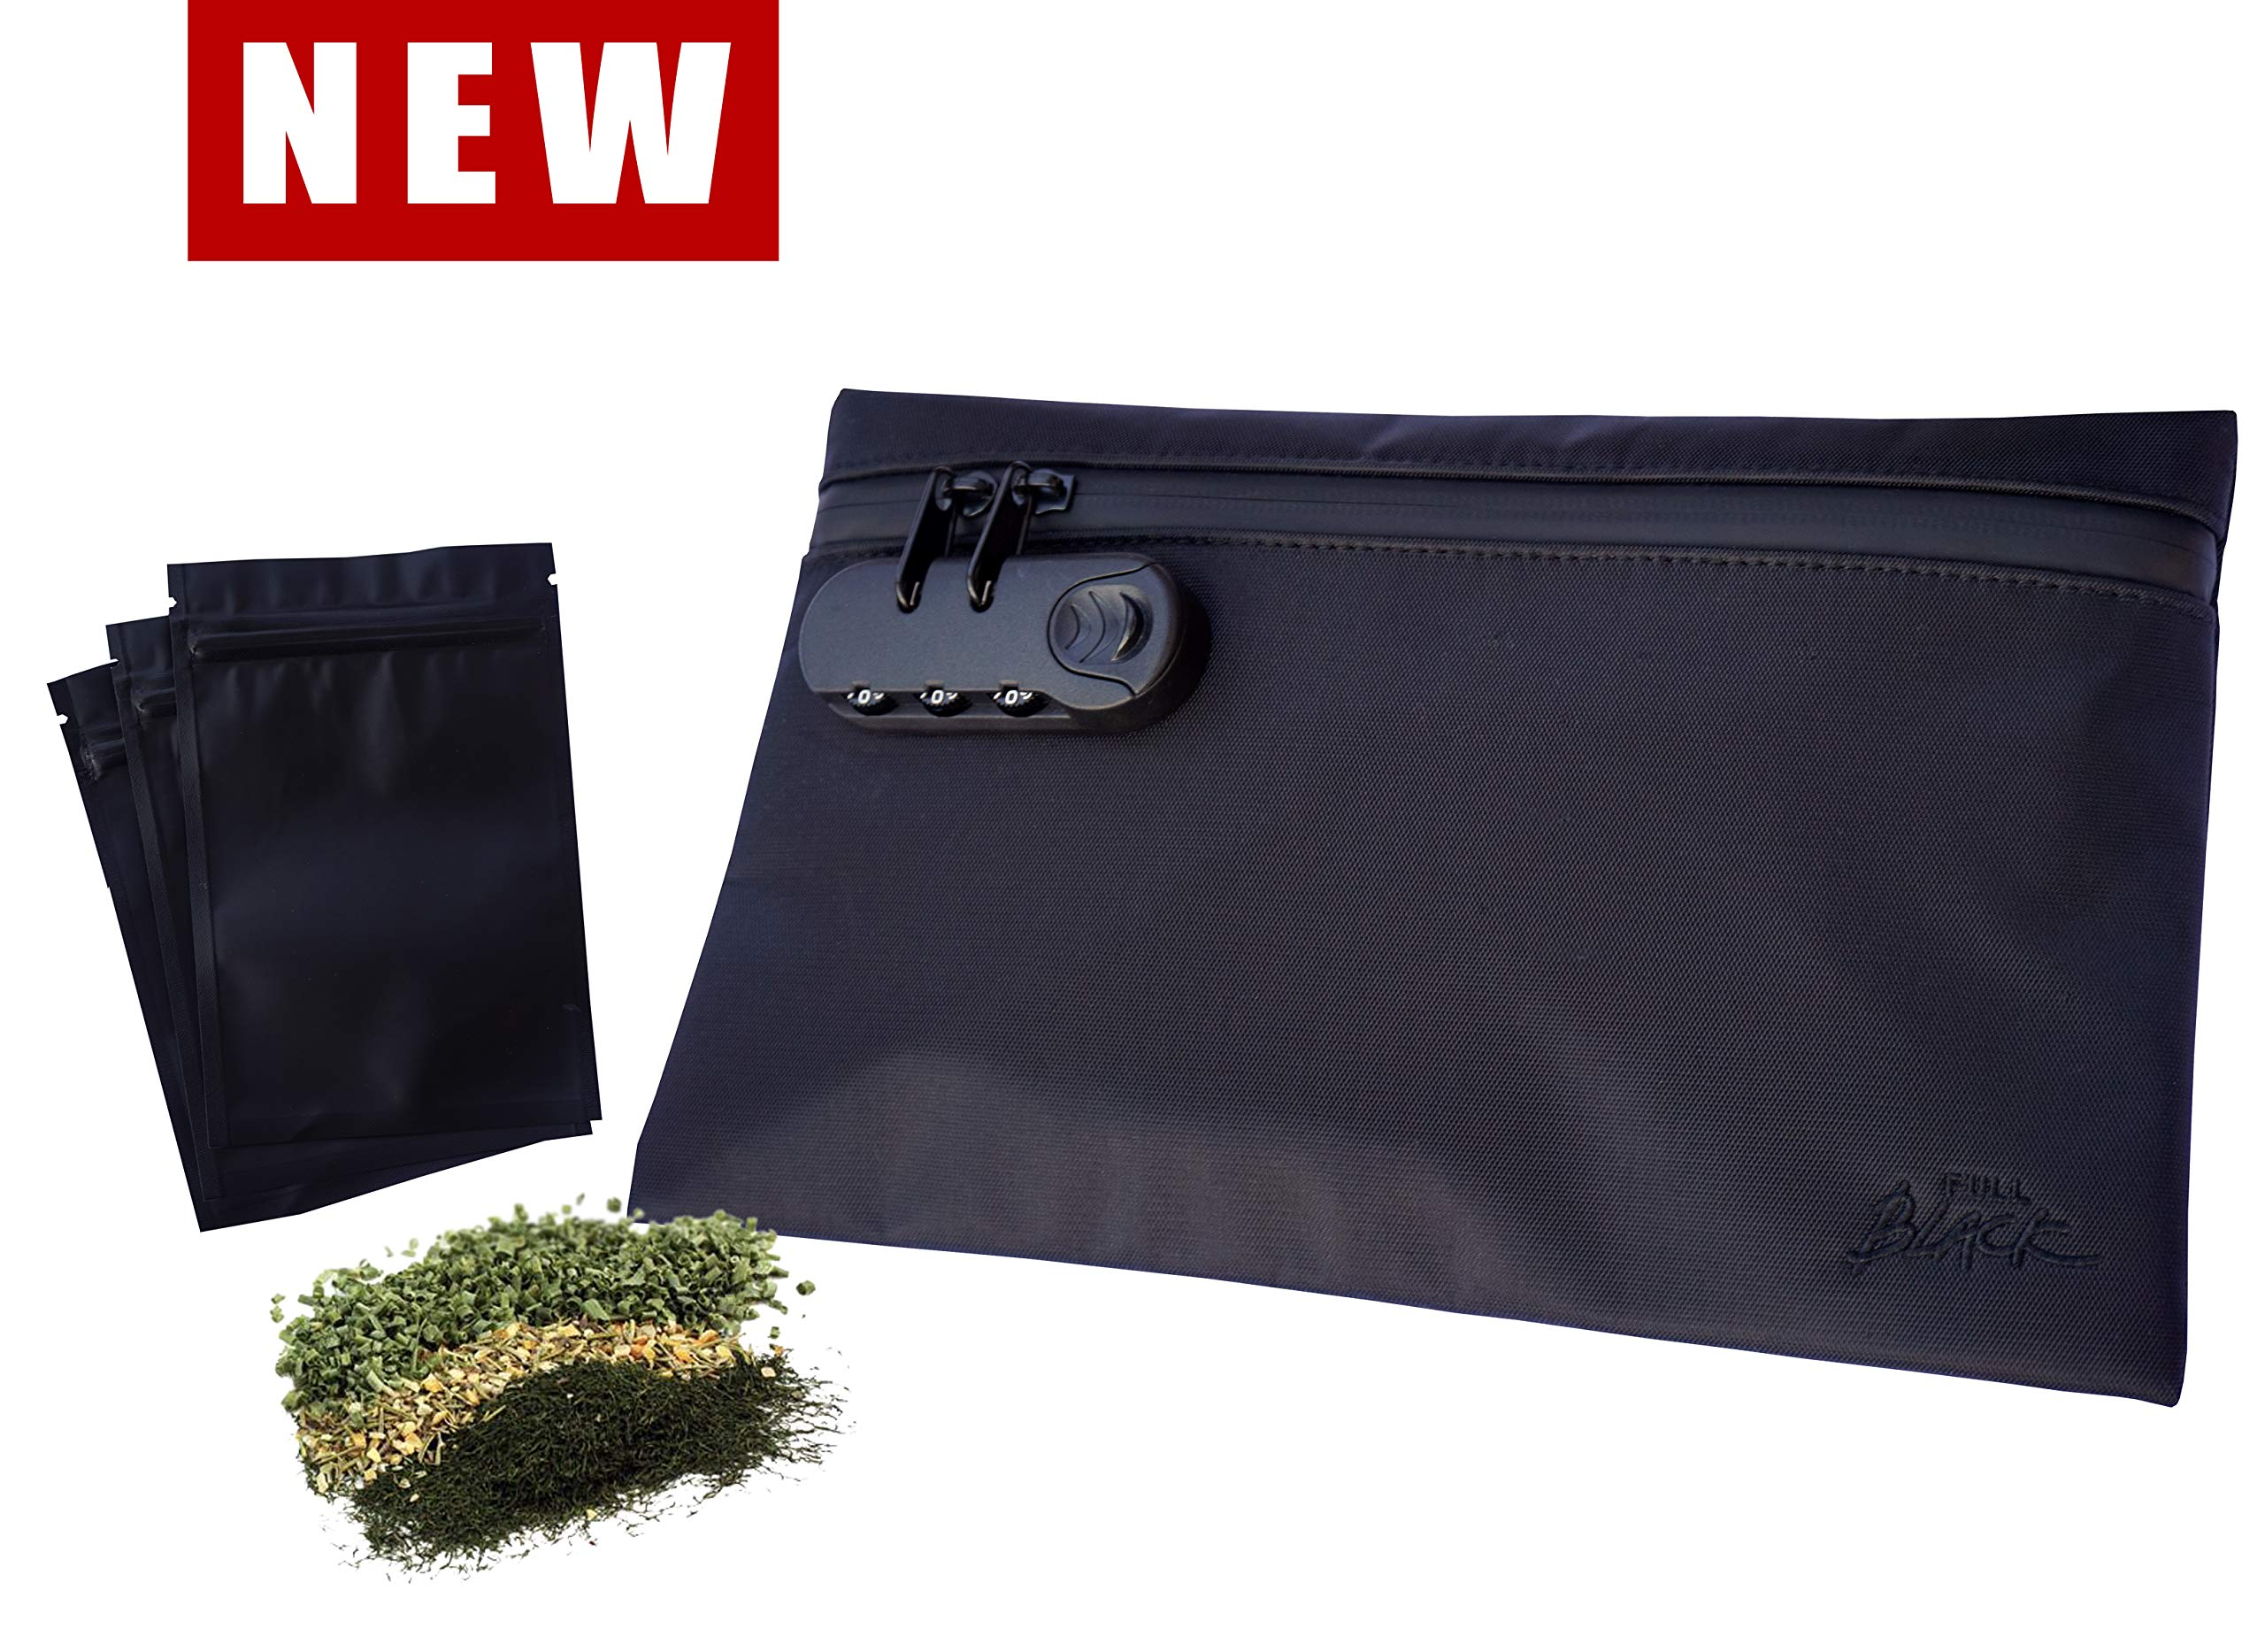 Smell Proof Bag + 3 Stash Bags - Dog Tested - Combination Lock, Carbon Odor Eliminator Lining, Water Resistant, 11x7'' Smellproof Odorless Stash Storage Pouch for Herbs, Vape Accessories, Rolling Paper by BellaTiz